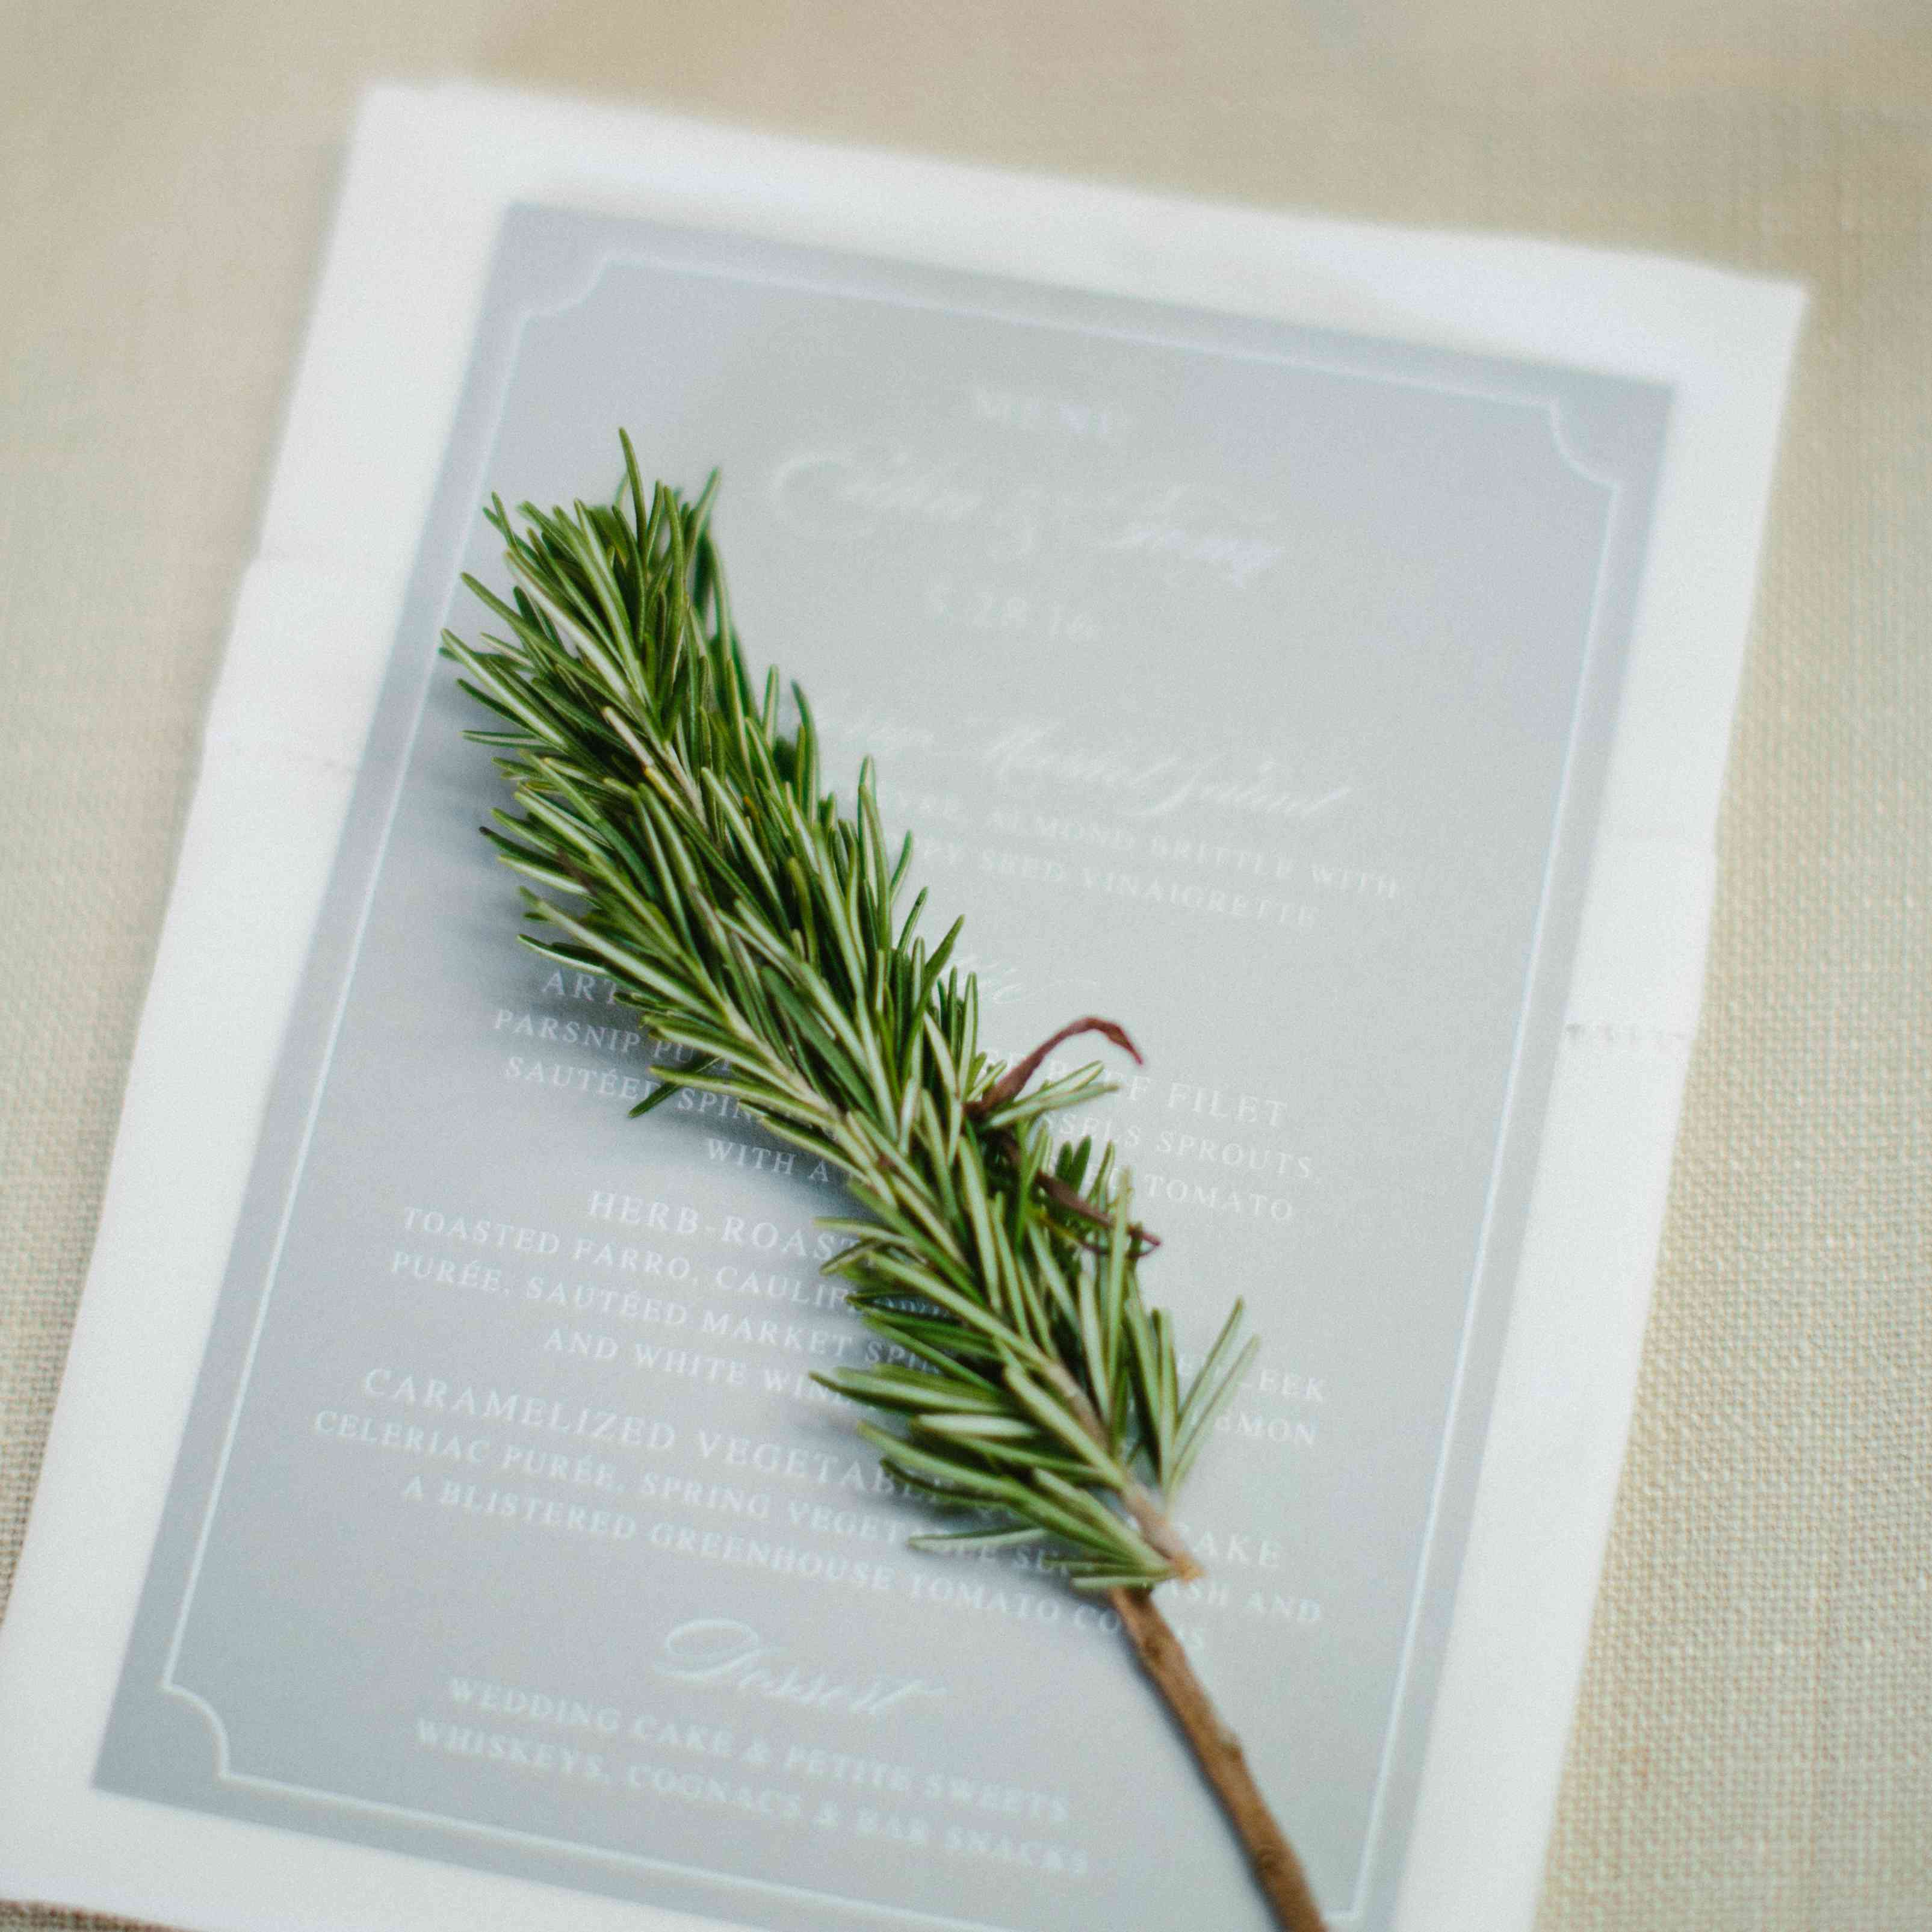 Reception Dinner Menu with Sprig of Greenery